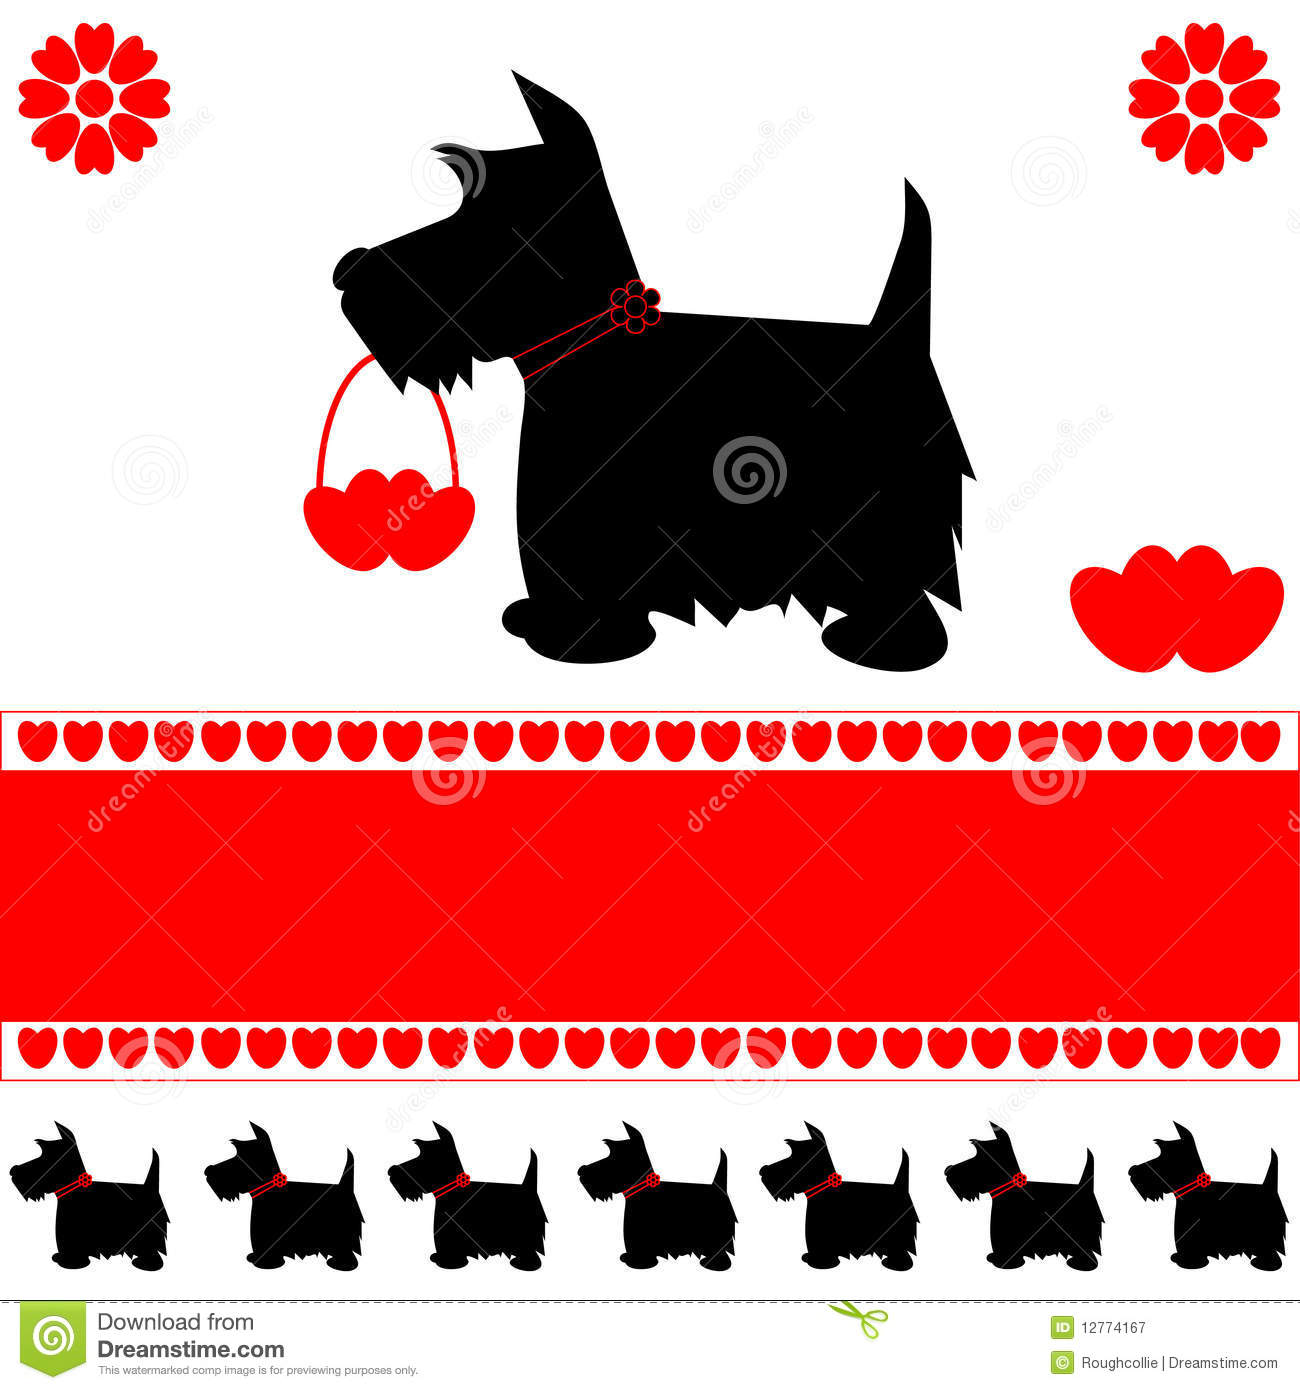 Dog love hearts card stock vector. Illustration of icons - 12774167